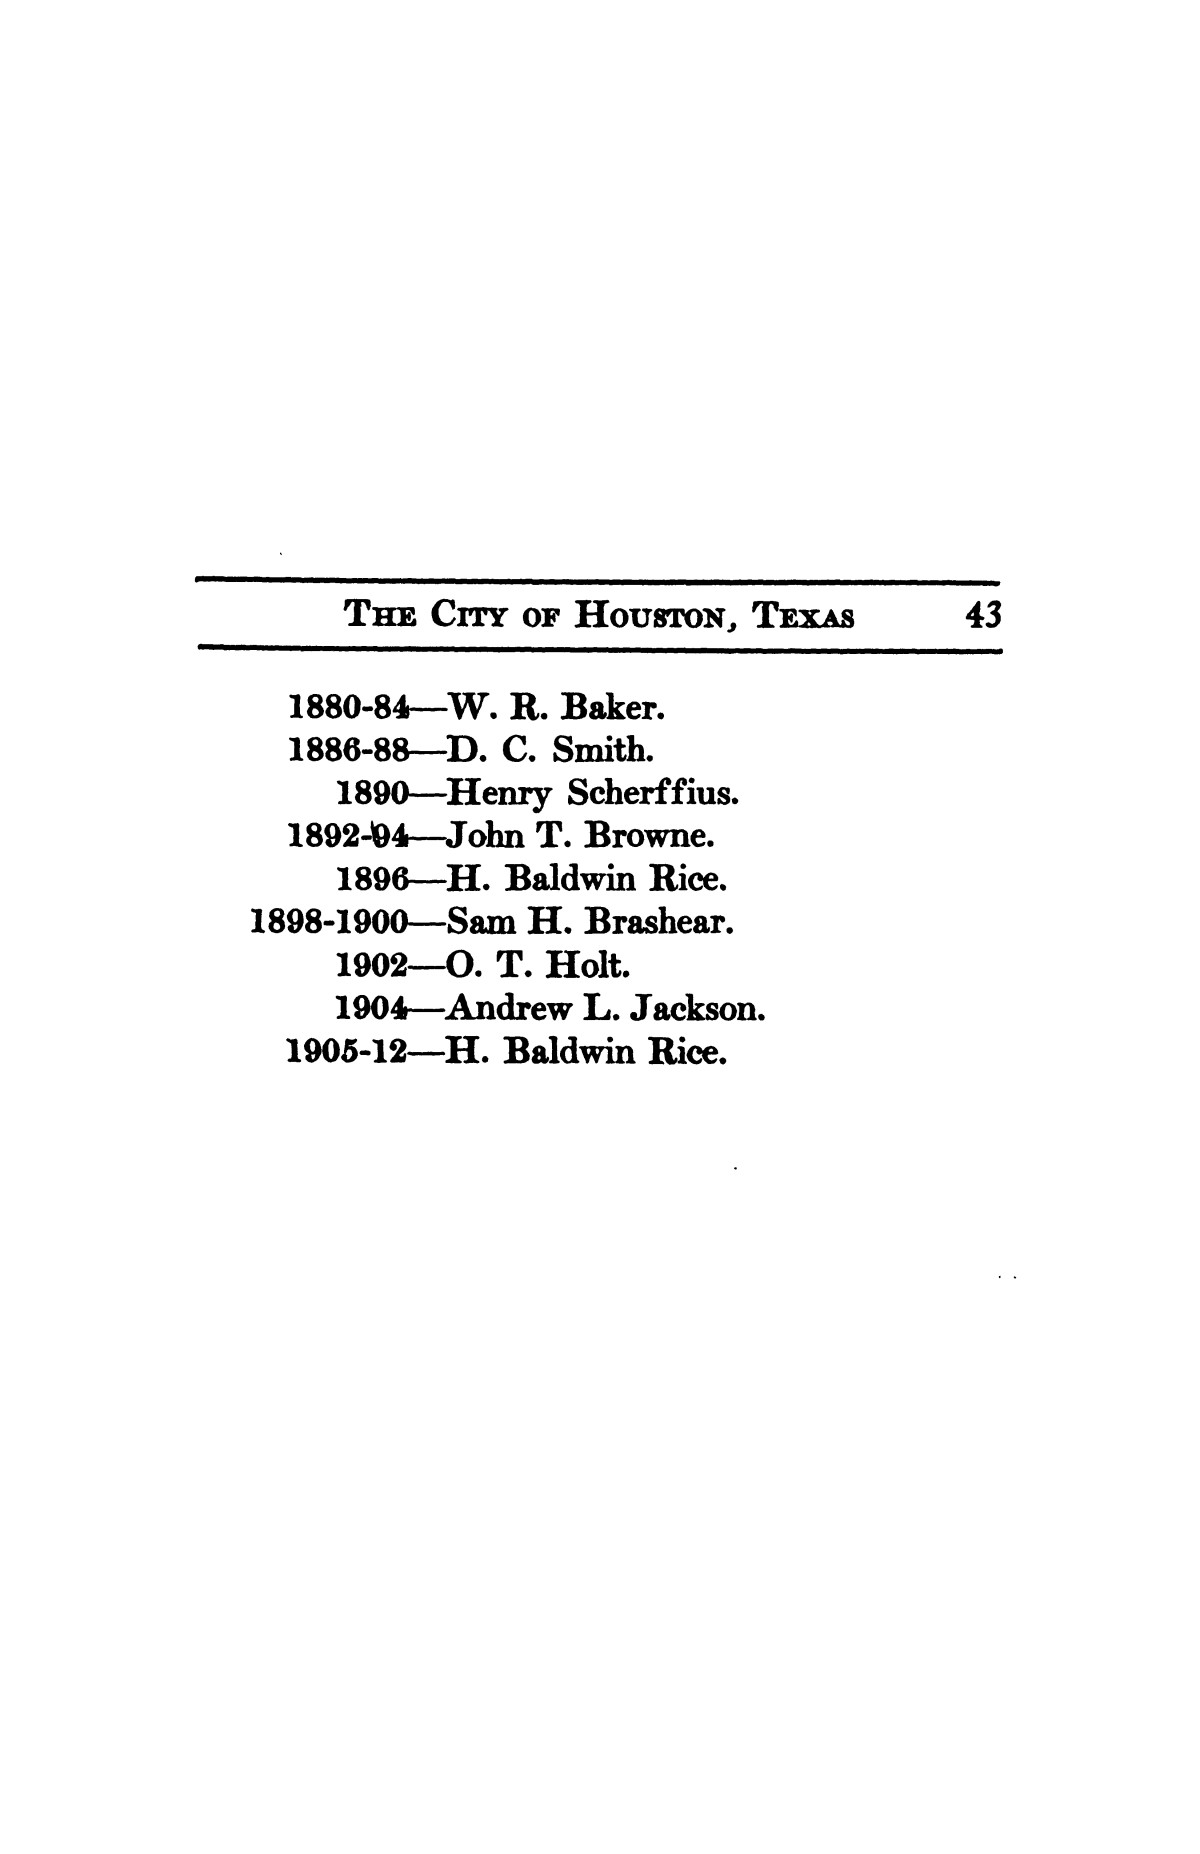 A thumb-nail history of the city of Houston, Texas, from its founding in 1836 to the year 1912                                                                                                      43